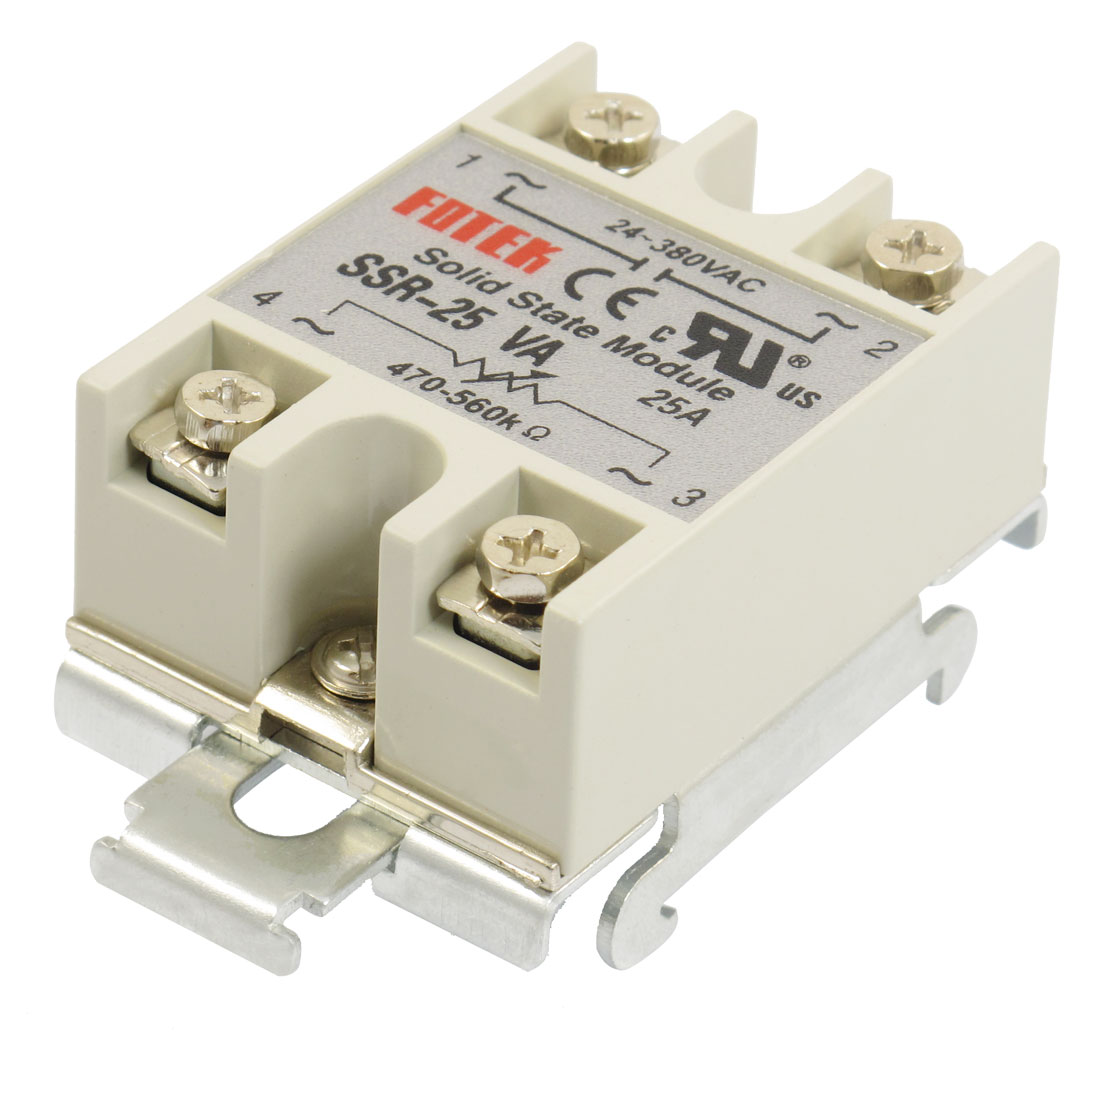 SSR 25A Single Phase Resistance Type Adjustable Solid State Relay DIN Rail Mount